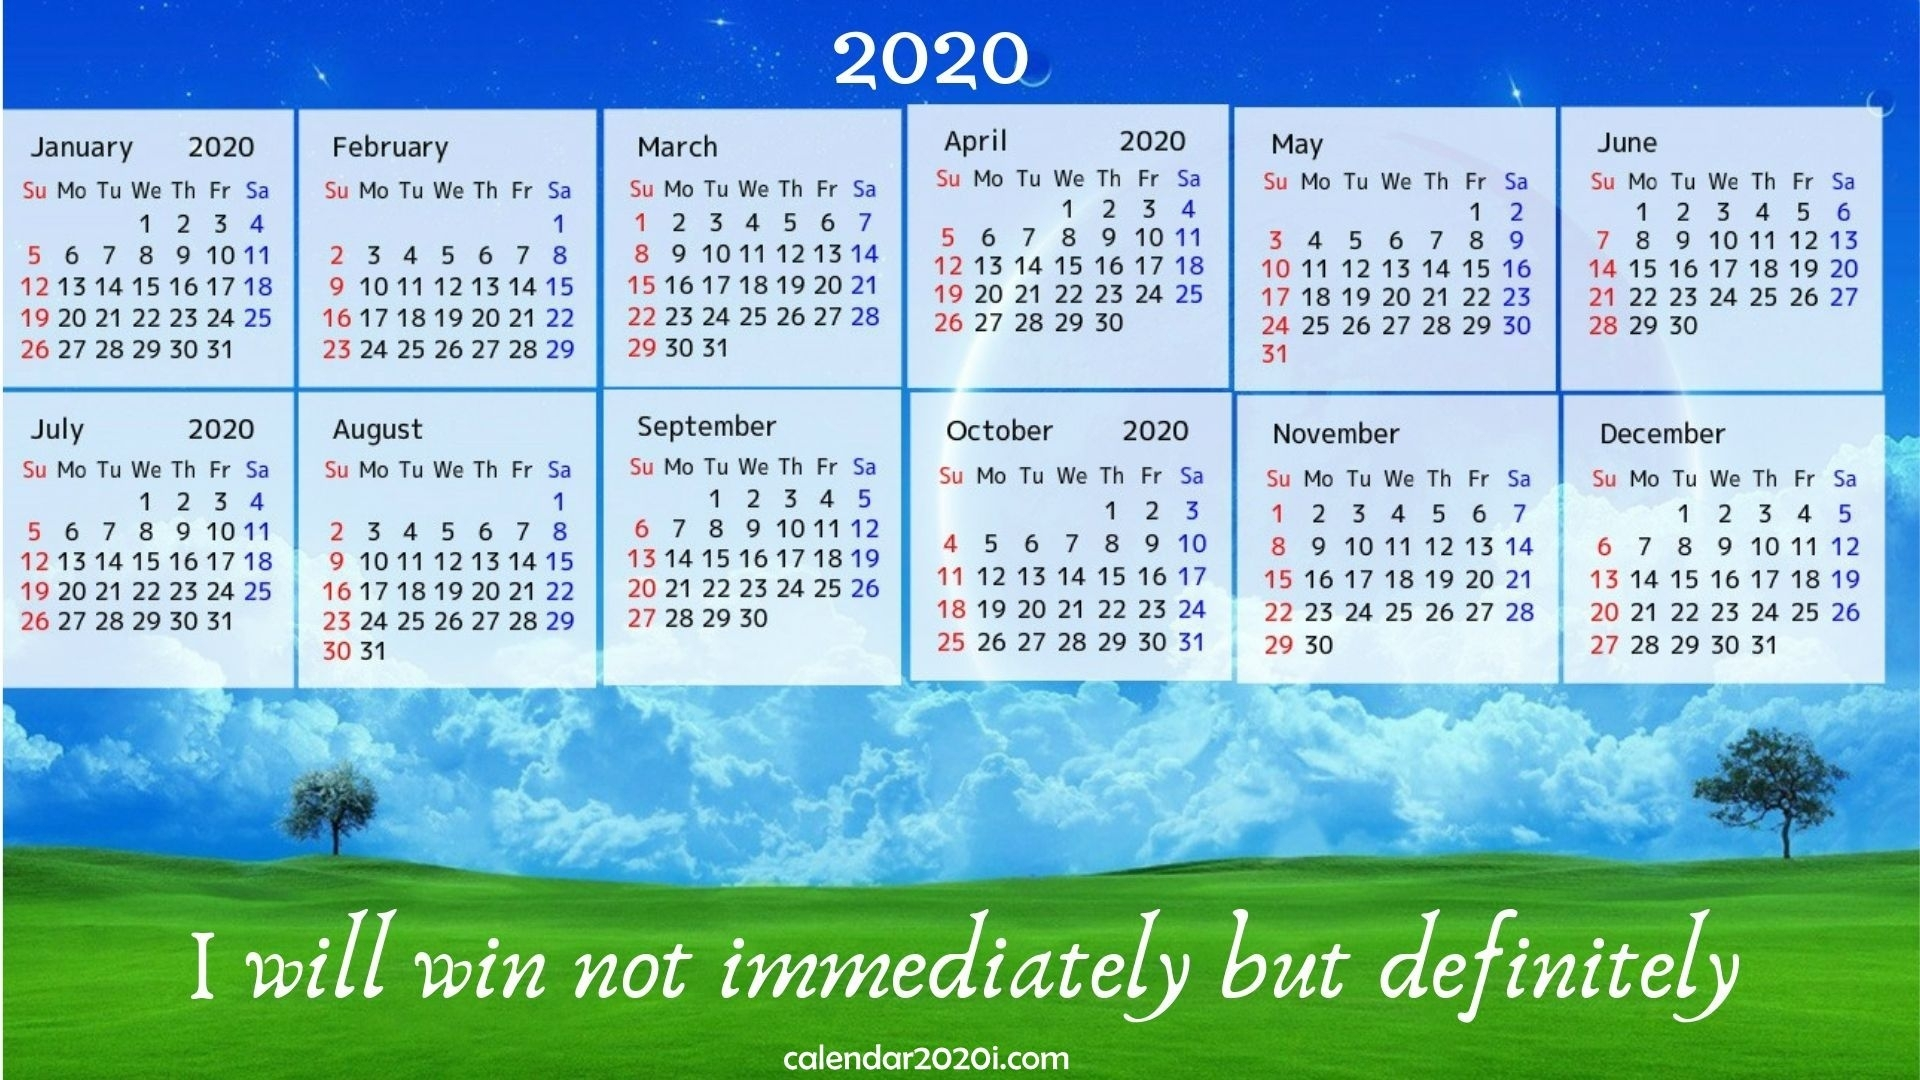 2020 Calendar With Inspirational Quotes, Sayings | Calendar 2020 with regard to Free Printable 2020 Canadian Calendar Motivational